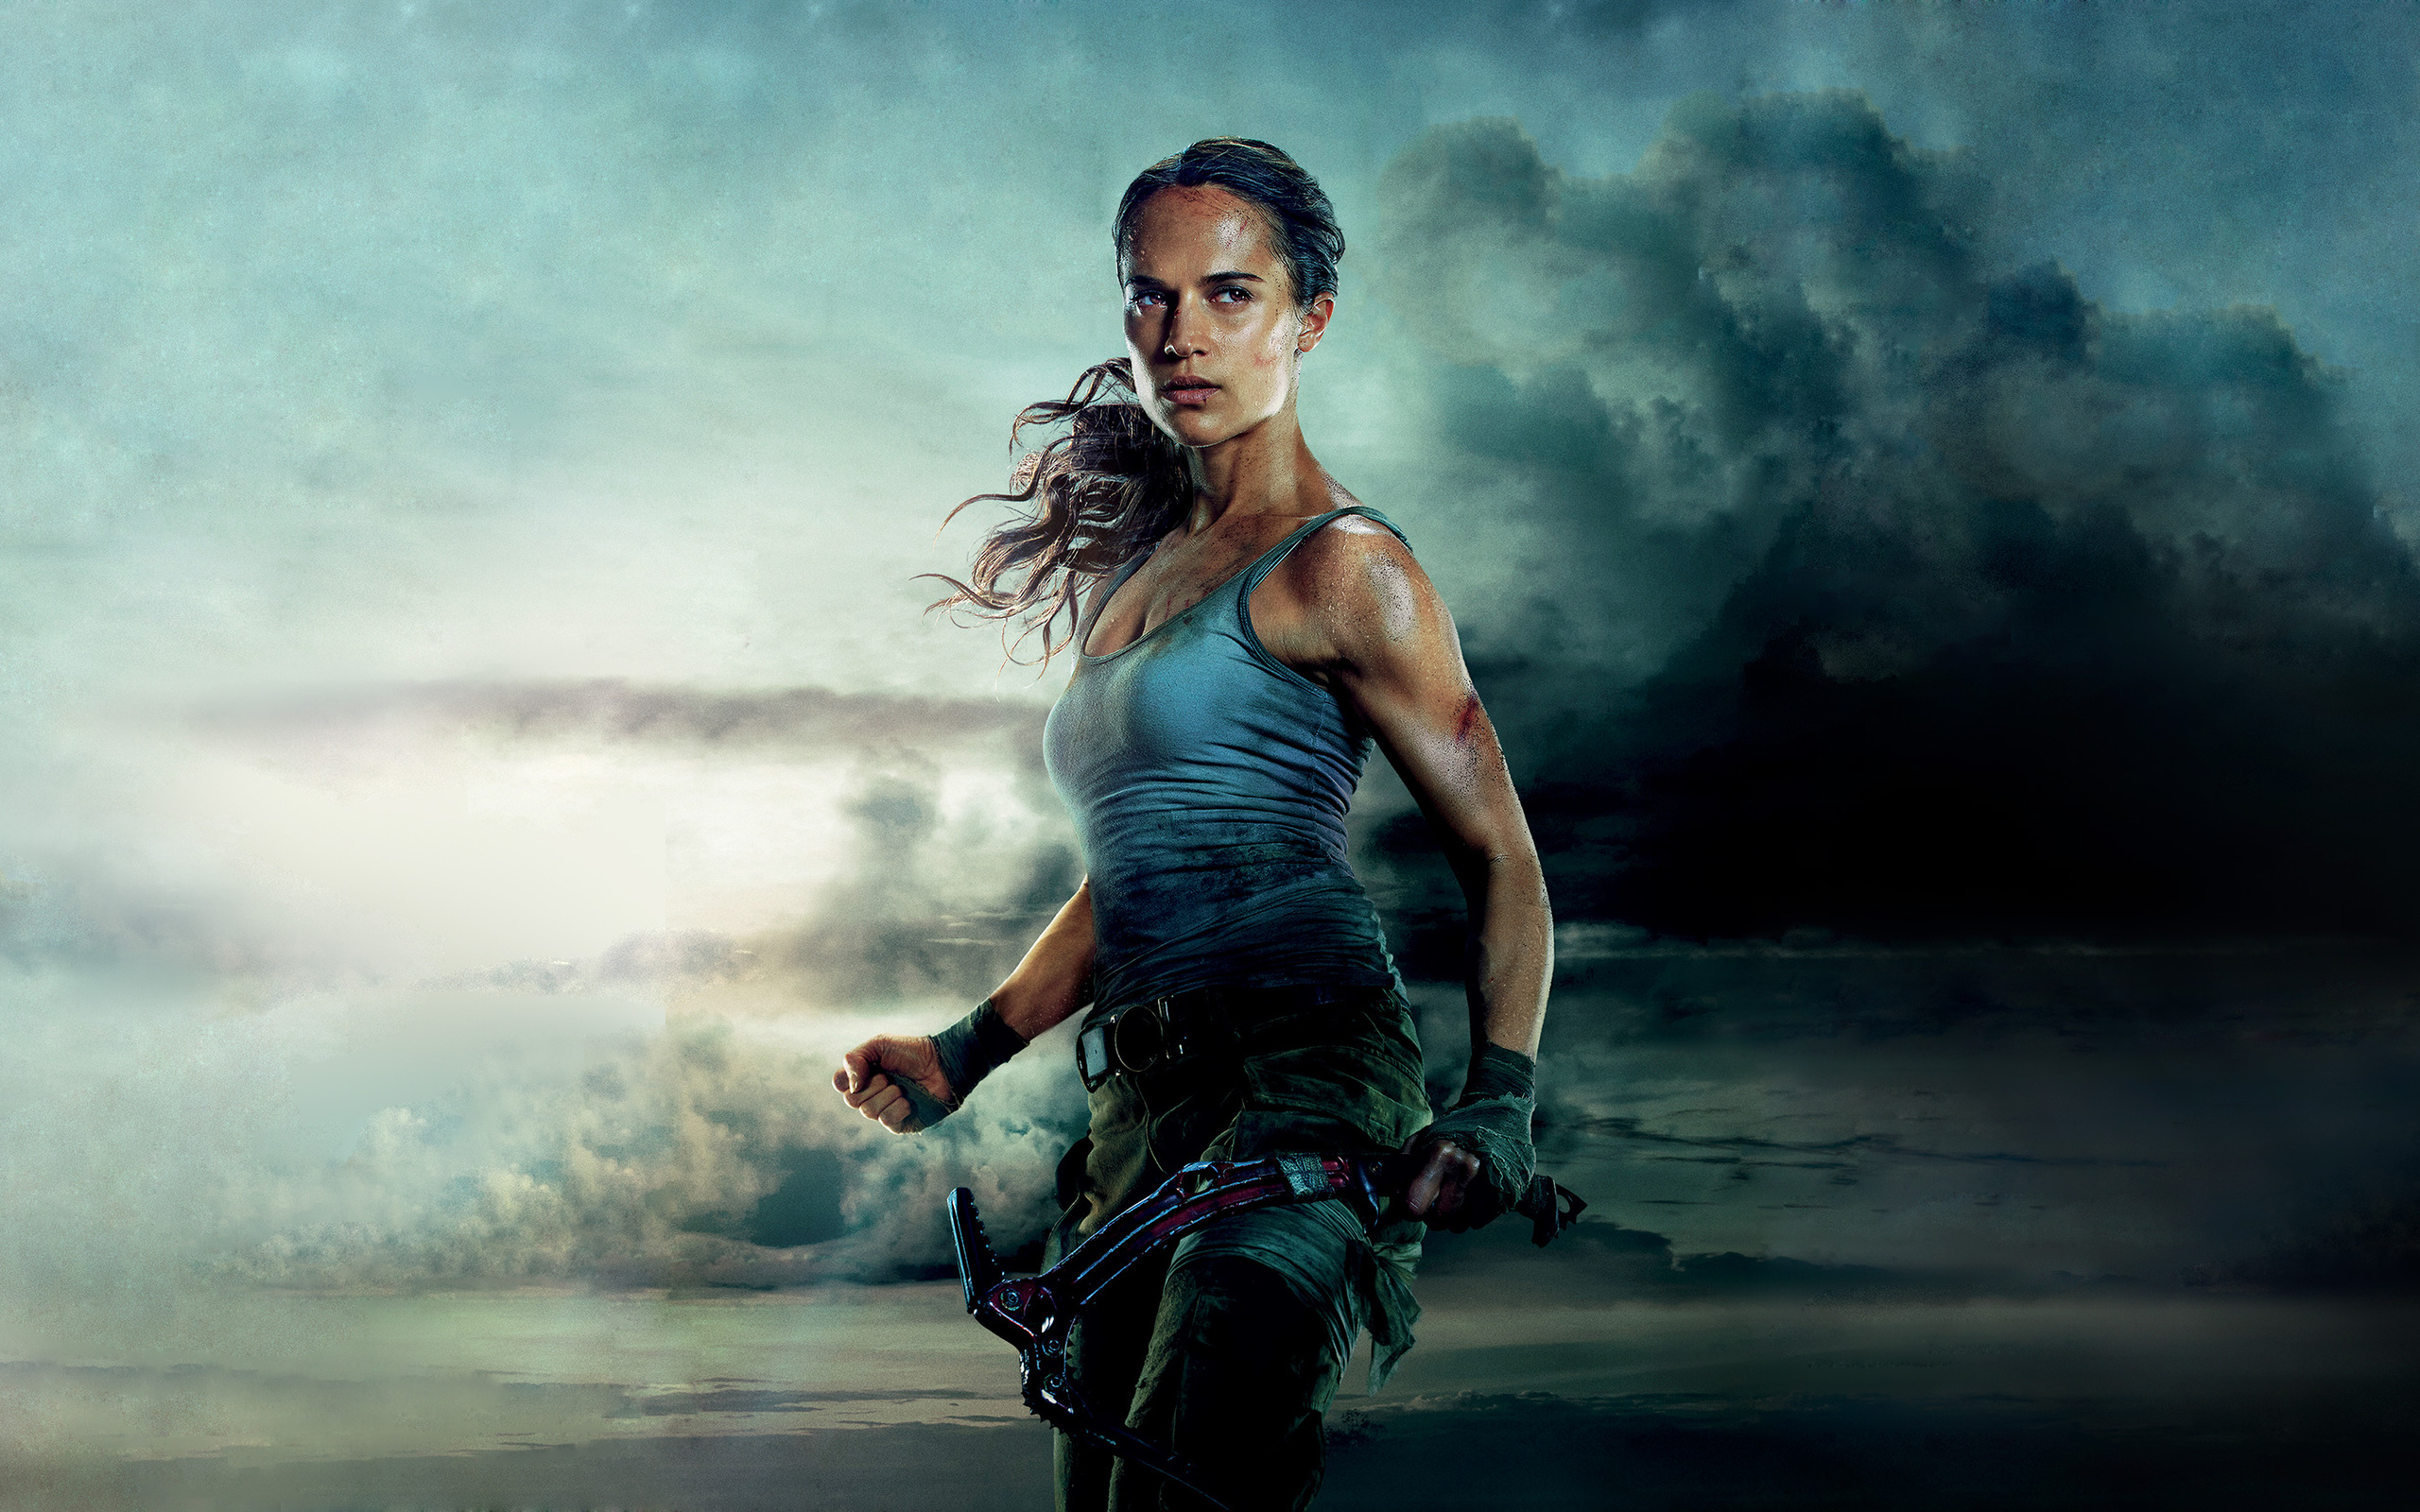 tomb-raider-movie-4k-fq.jpg